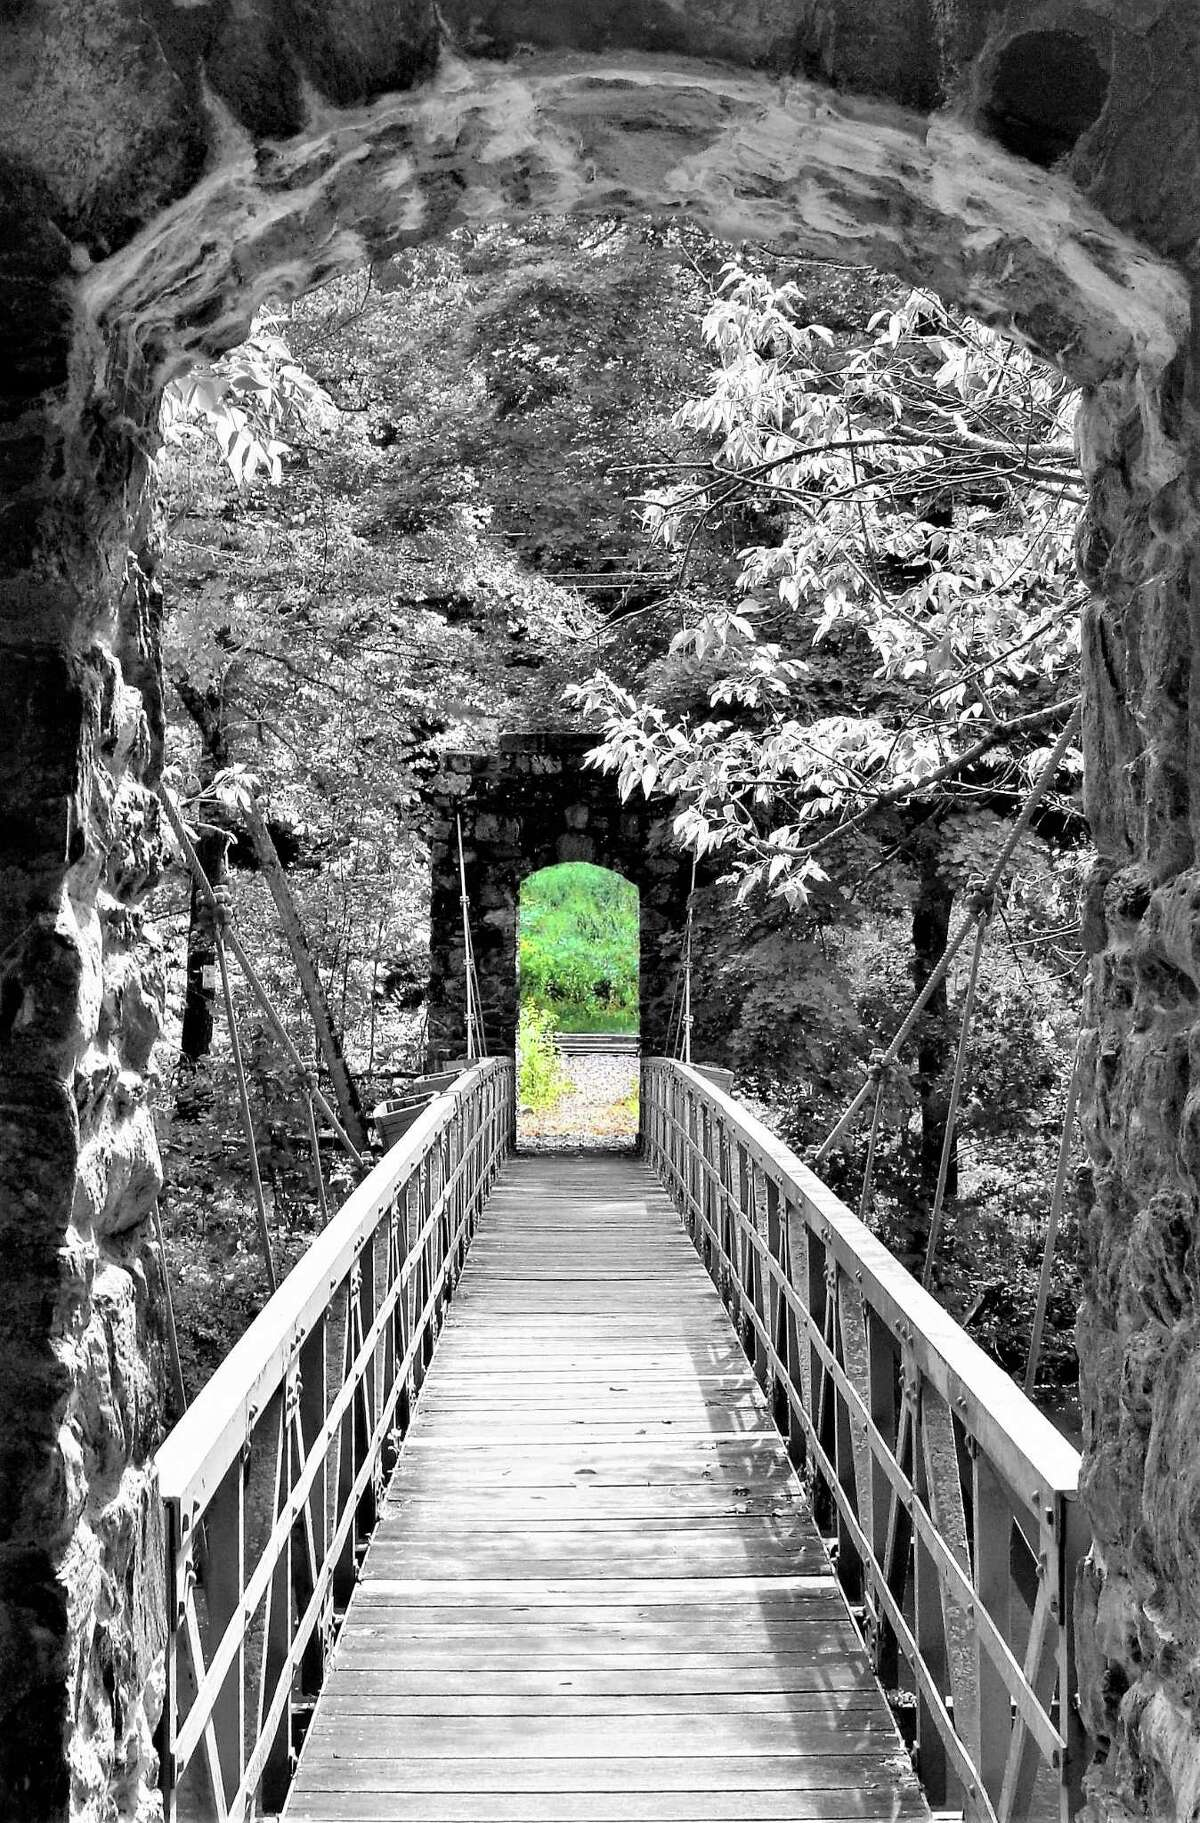 Steve Carnavos of Guildreland took this at the trail entrance to Laurel Hill in Stockbridge, Mass., Color is deleted to create the effect.